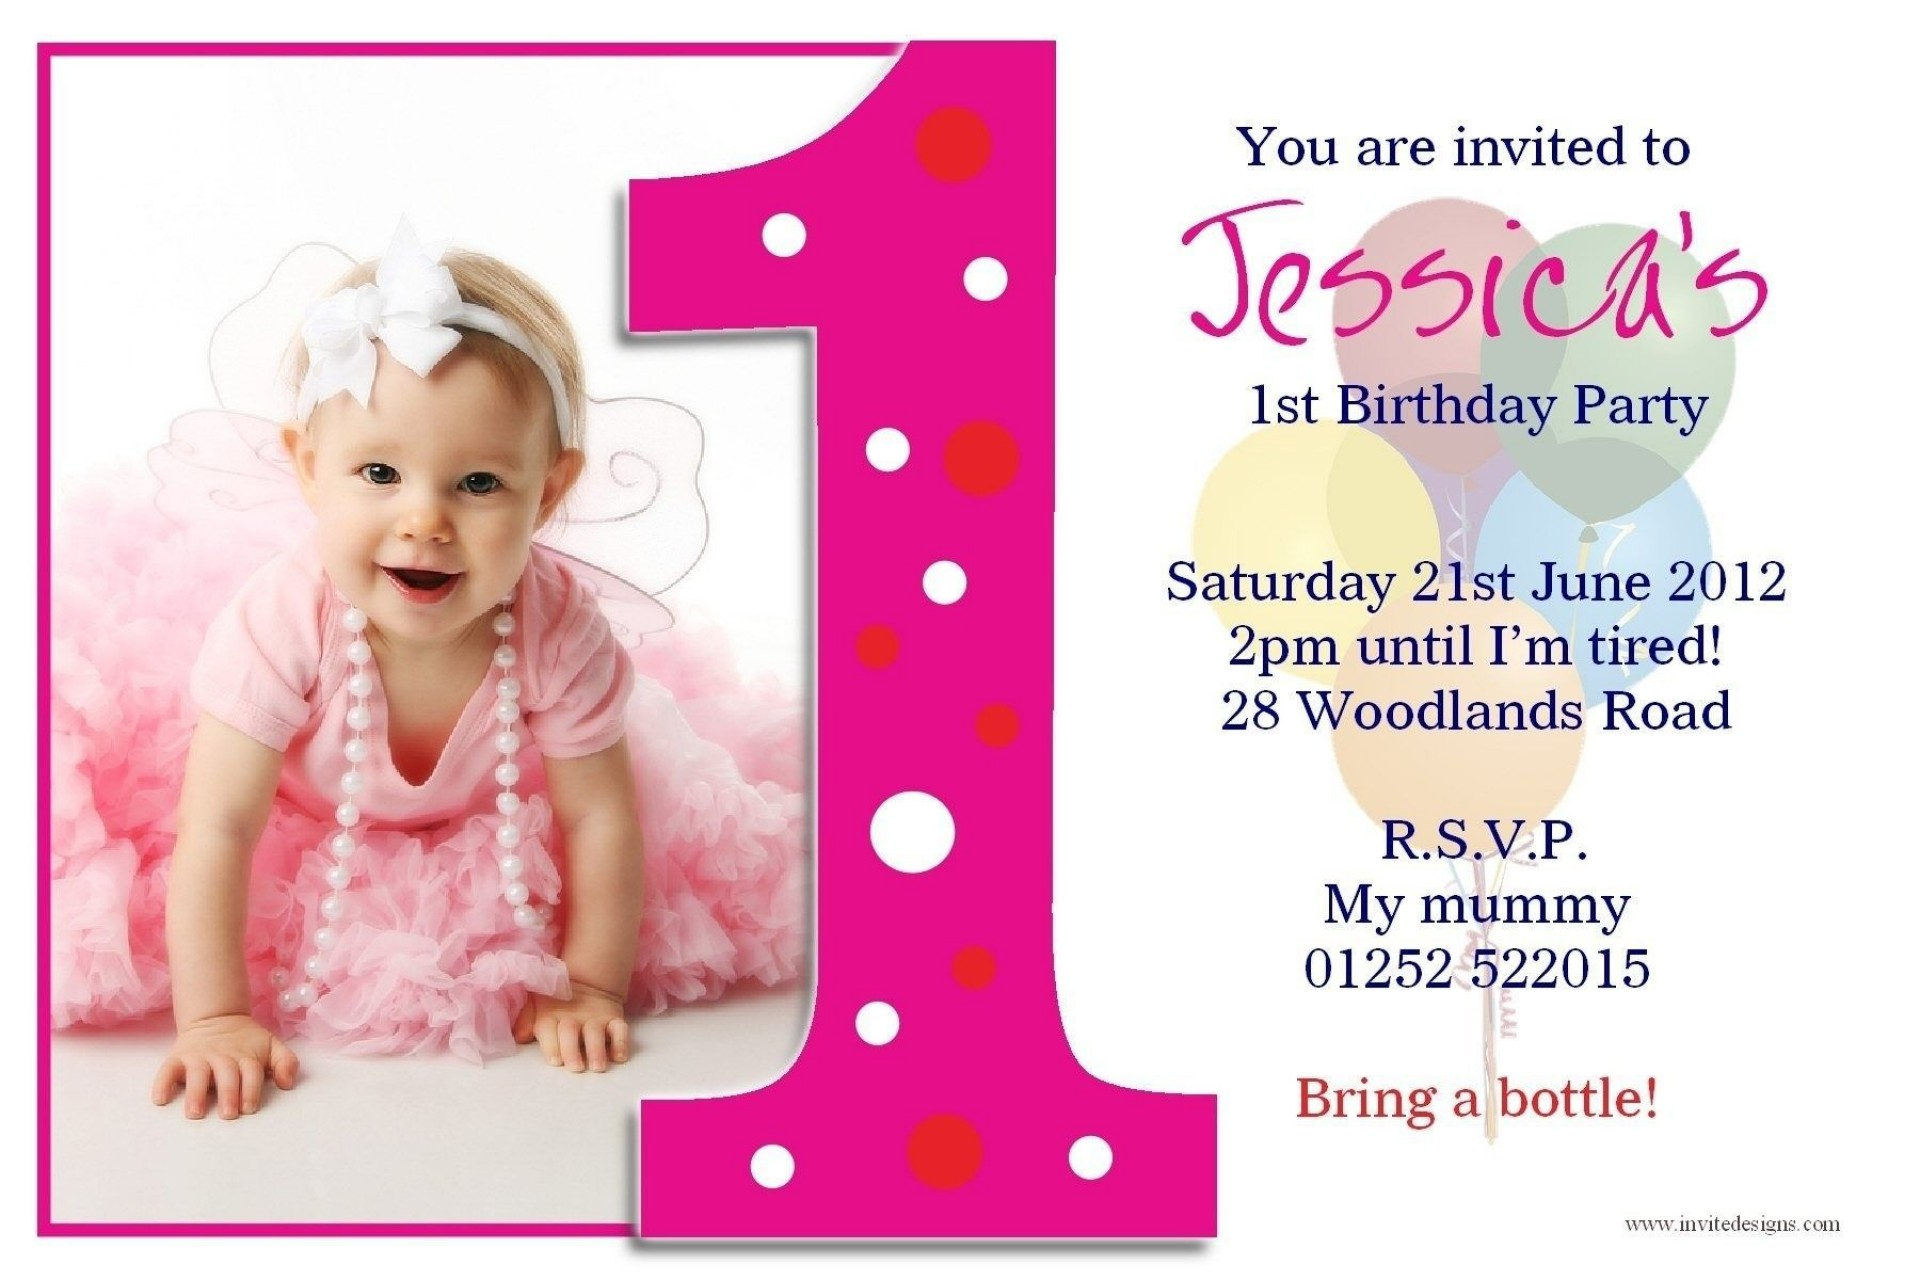 006 Awesome Birthday Invitation Template Free Download Concept  Editable Video Twin First Downloadable 18th Printable1920